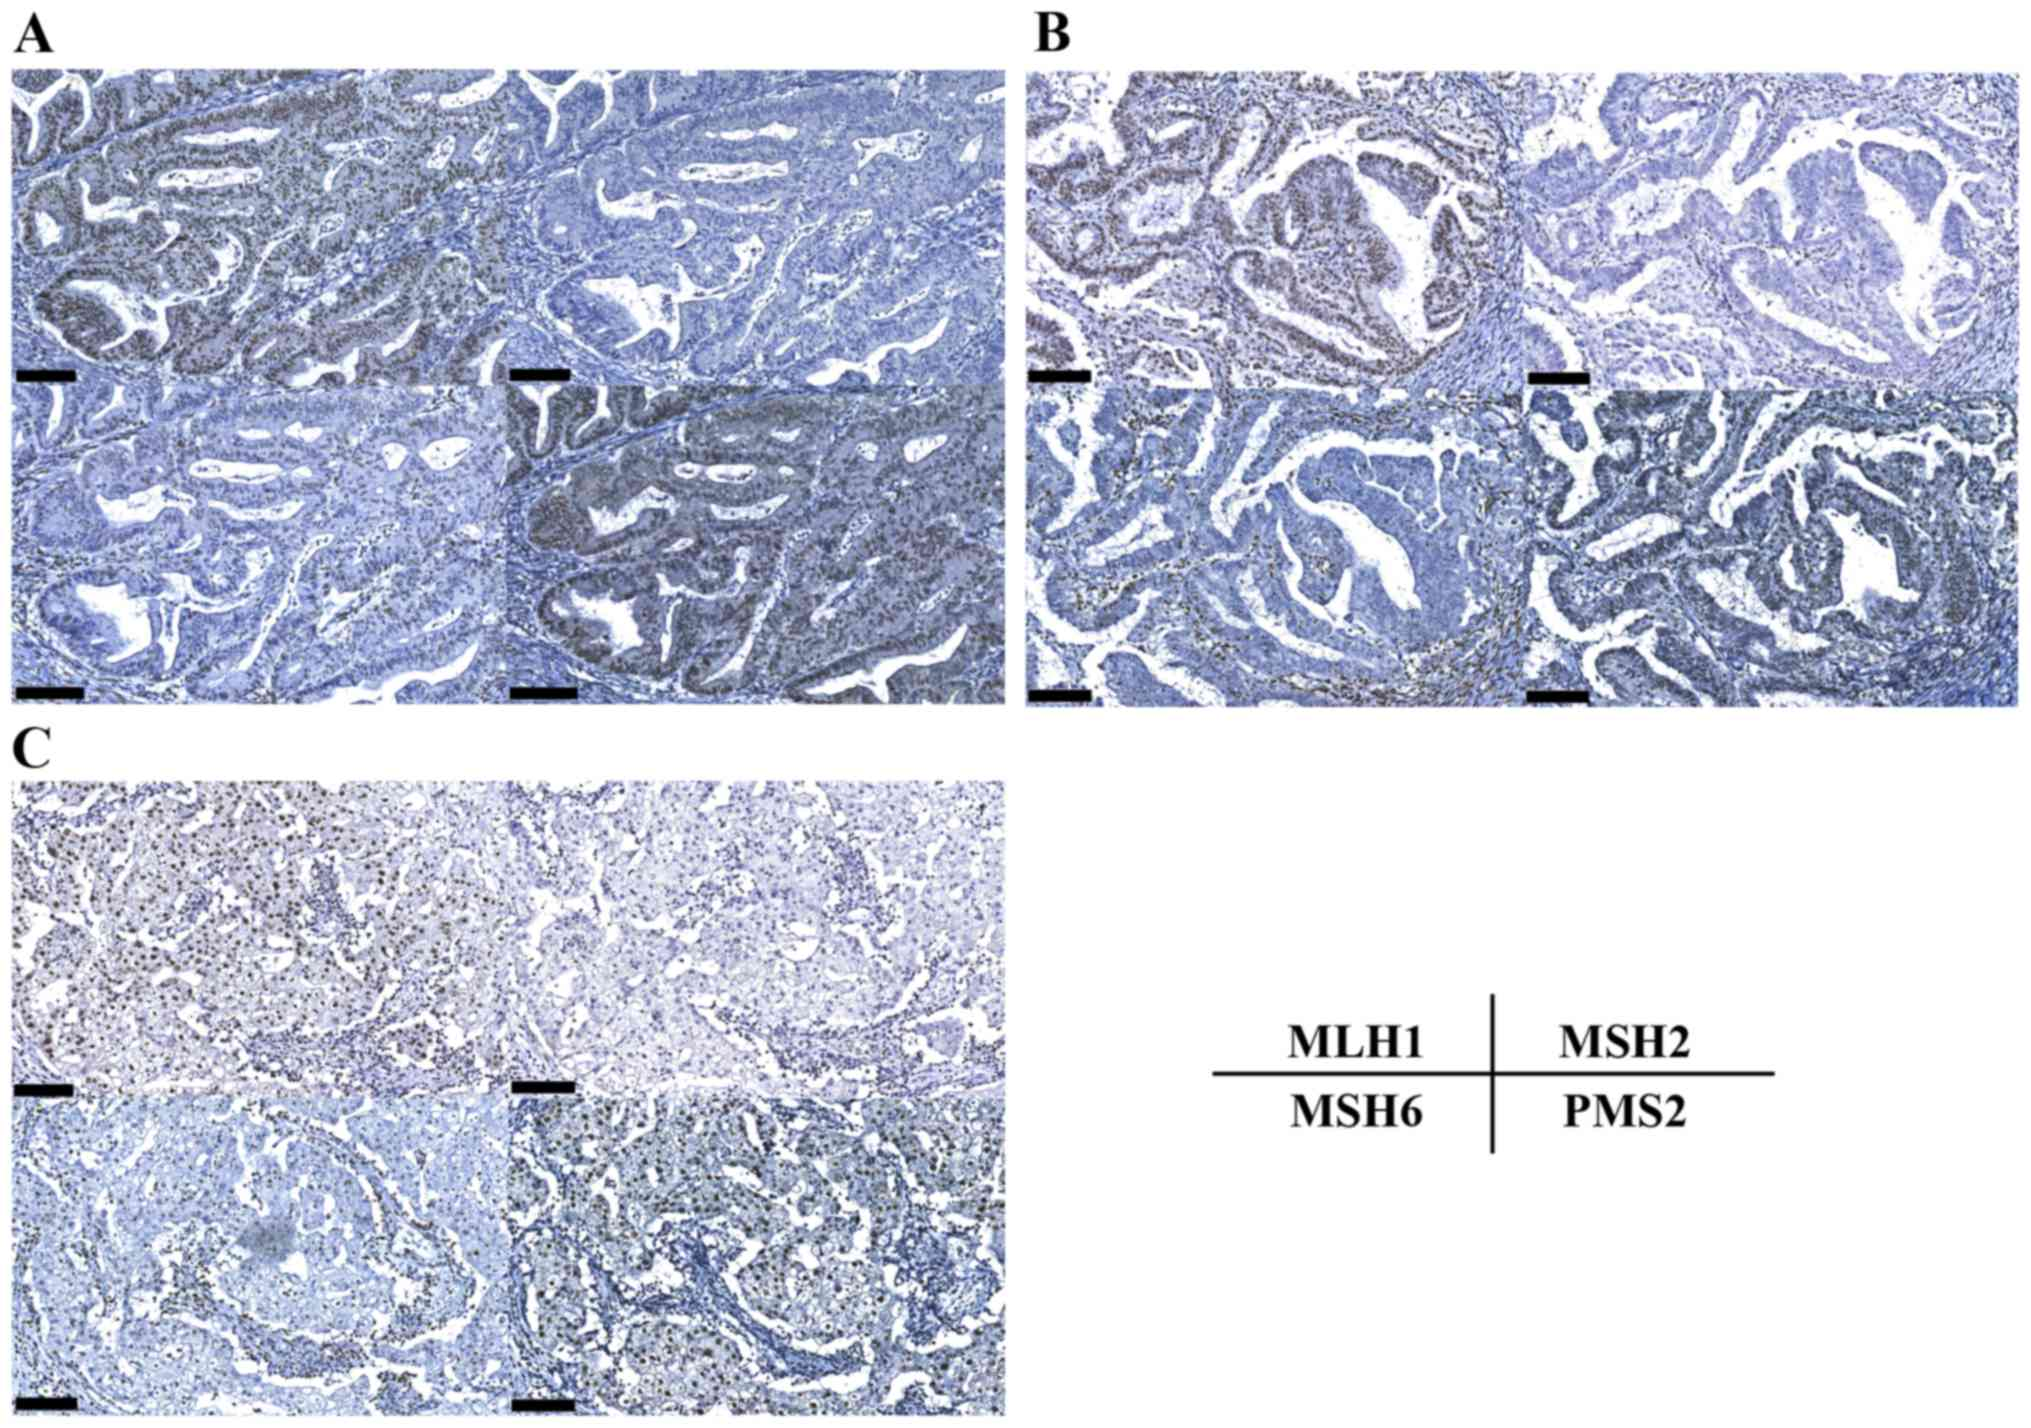 Synchronous Endometrial And Ovarian Cancer In Lynch Syndrome With A Msh2 Germline Mutation A Case Report